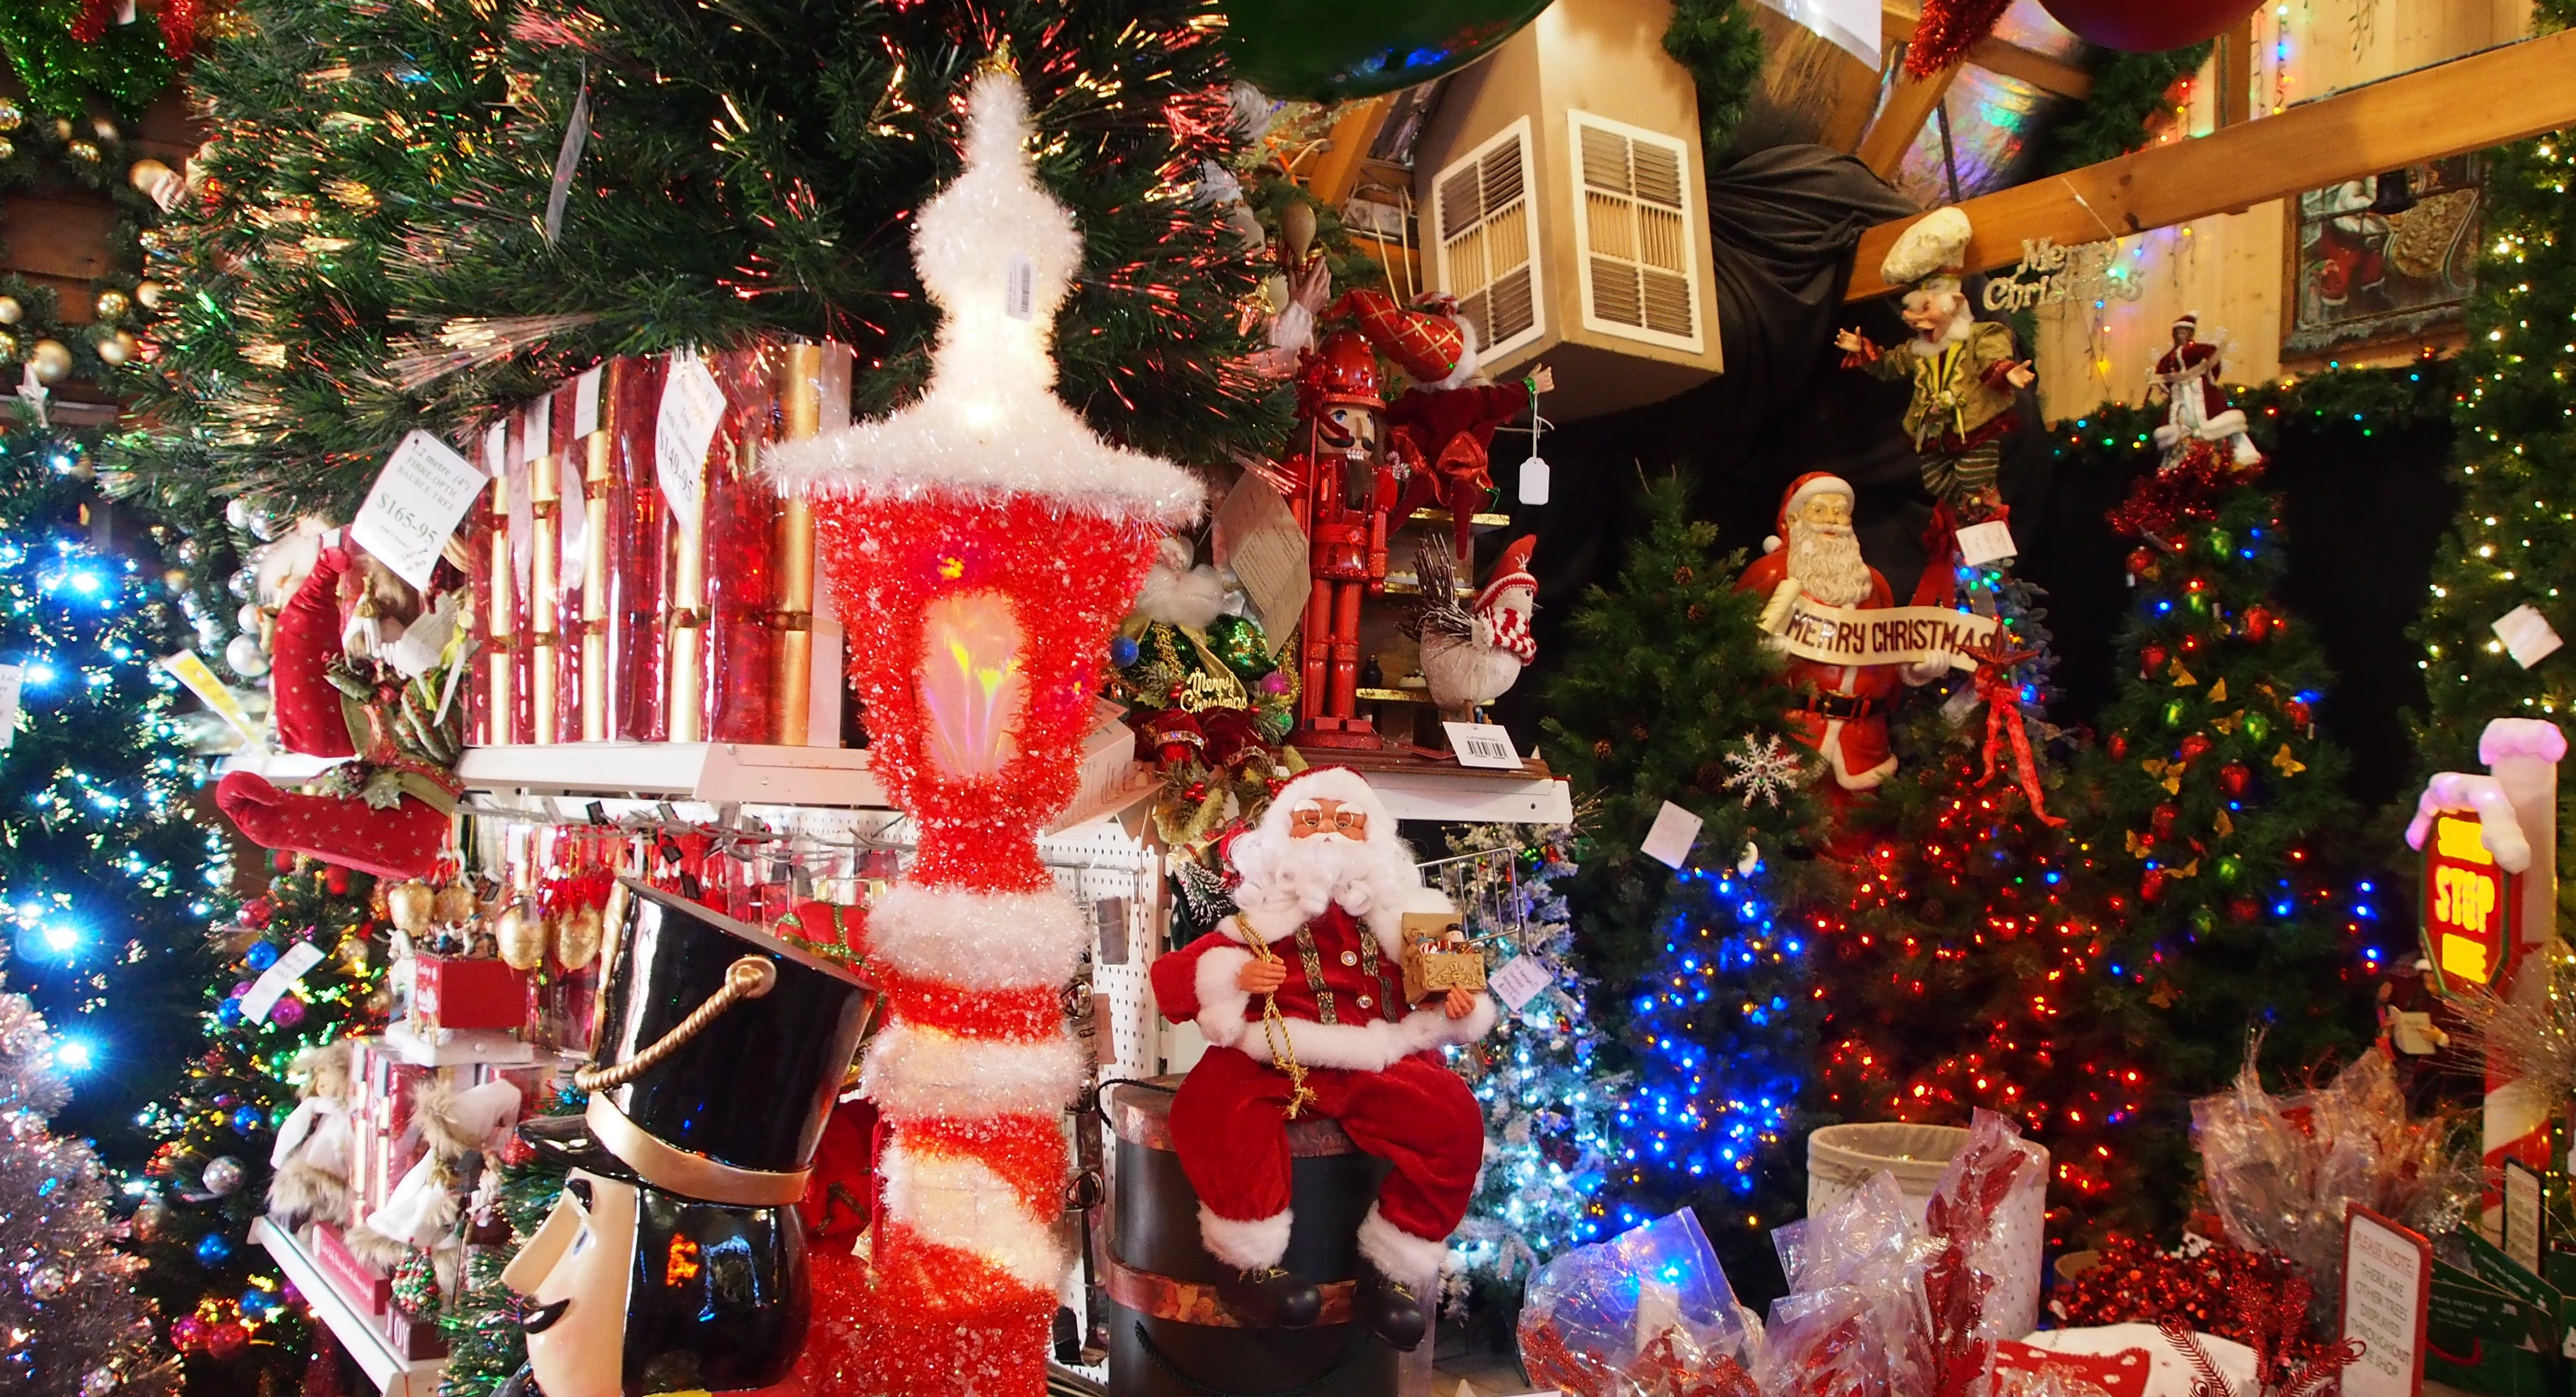 Christmas Decorations Myer : Myer christmas windows melbourne by lorraine a